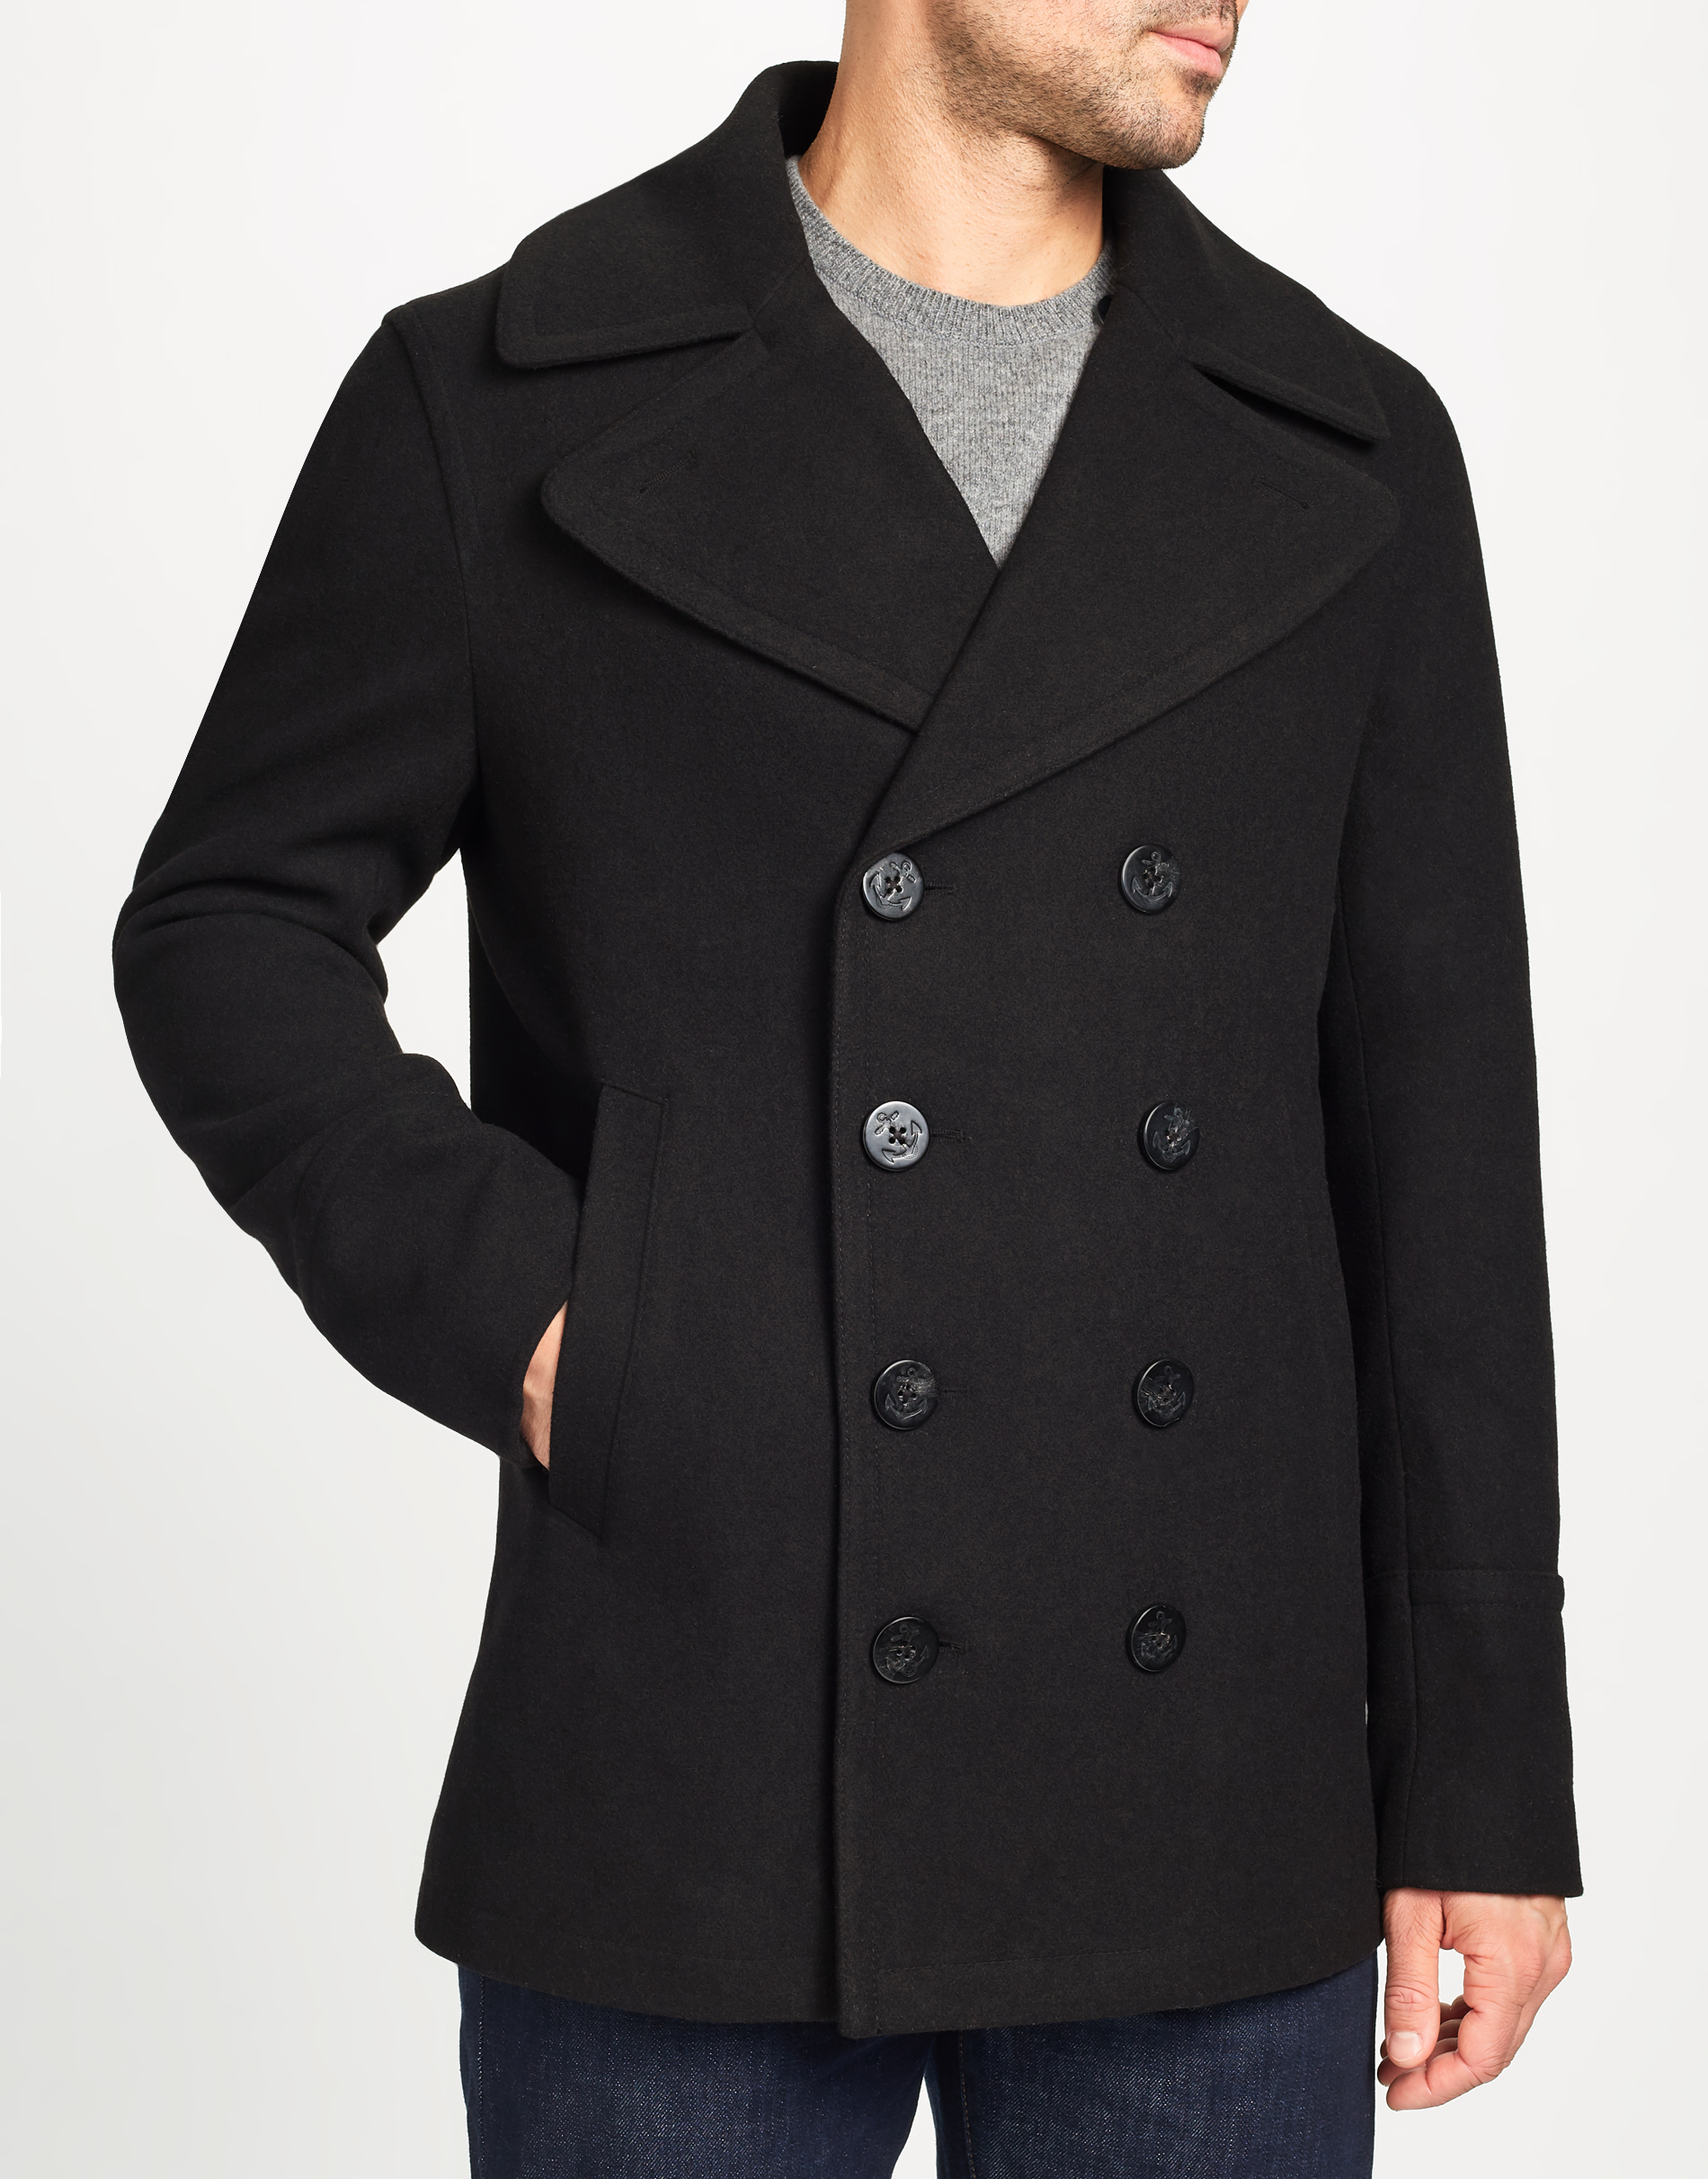 MVP Garner Wool Blend Pea Coat - Black